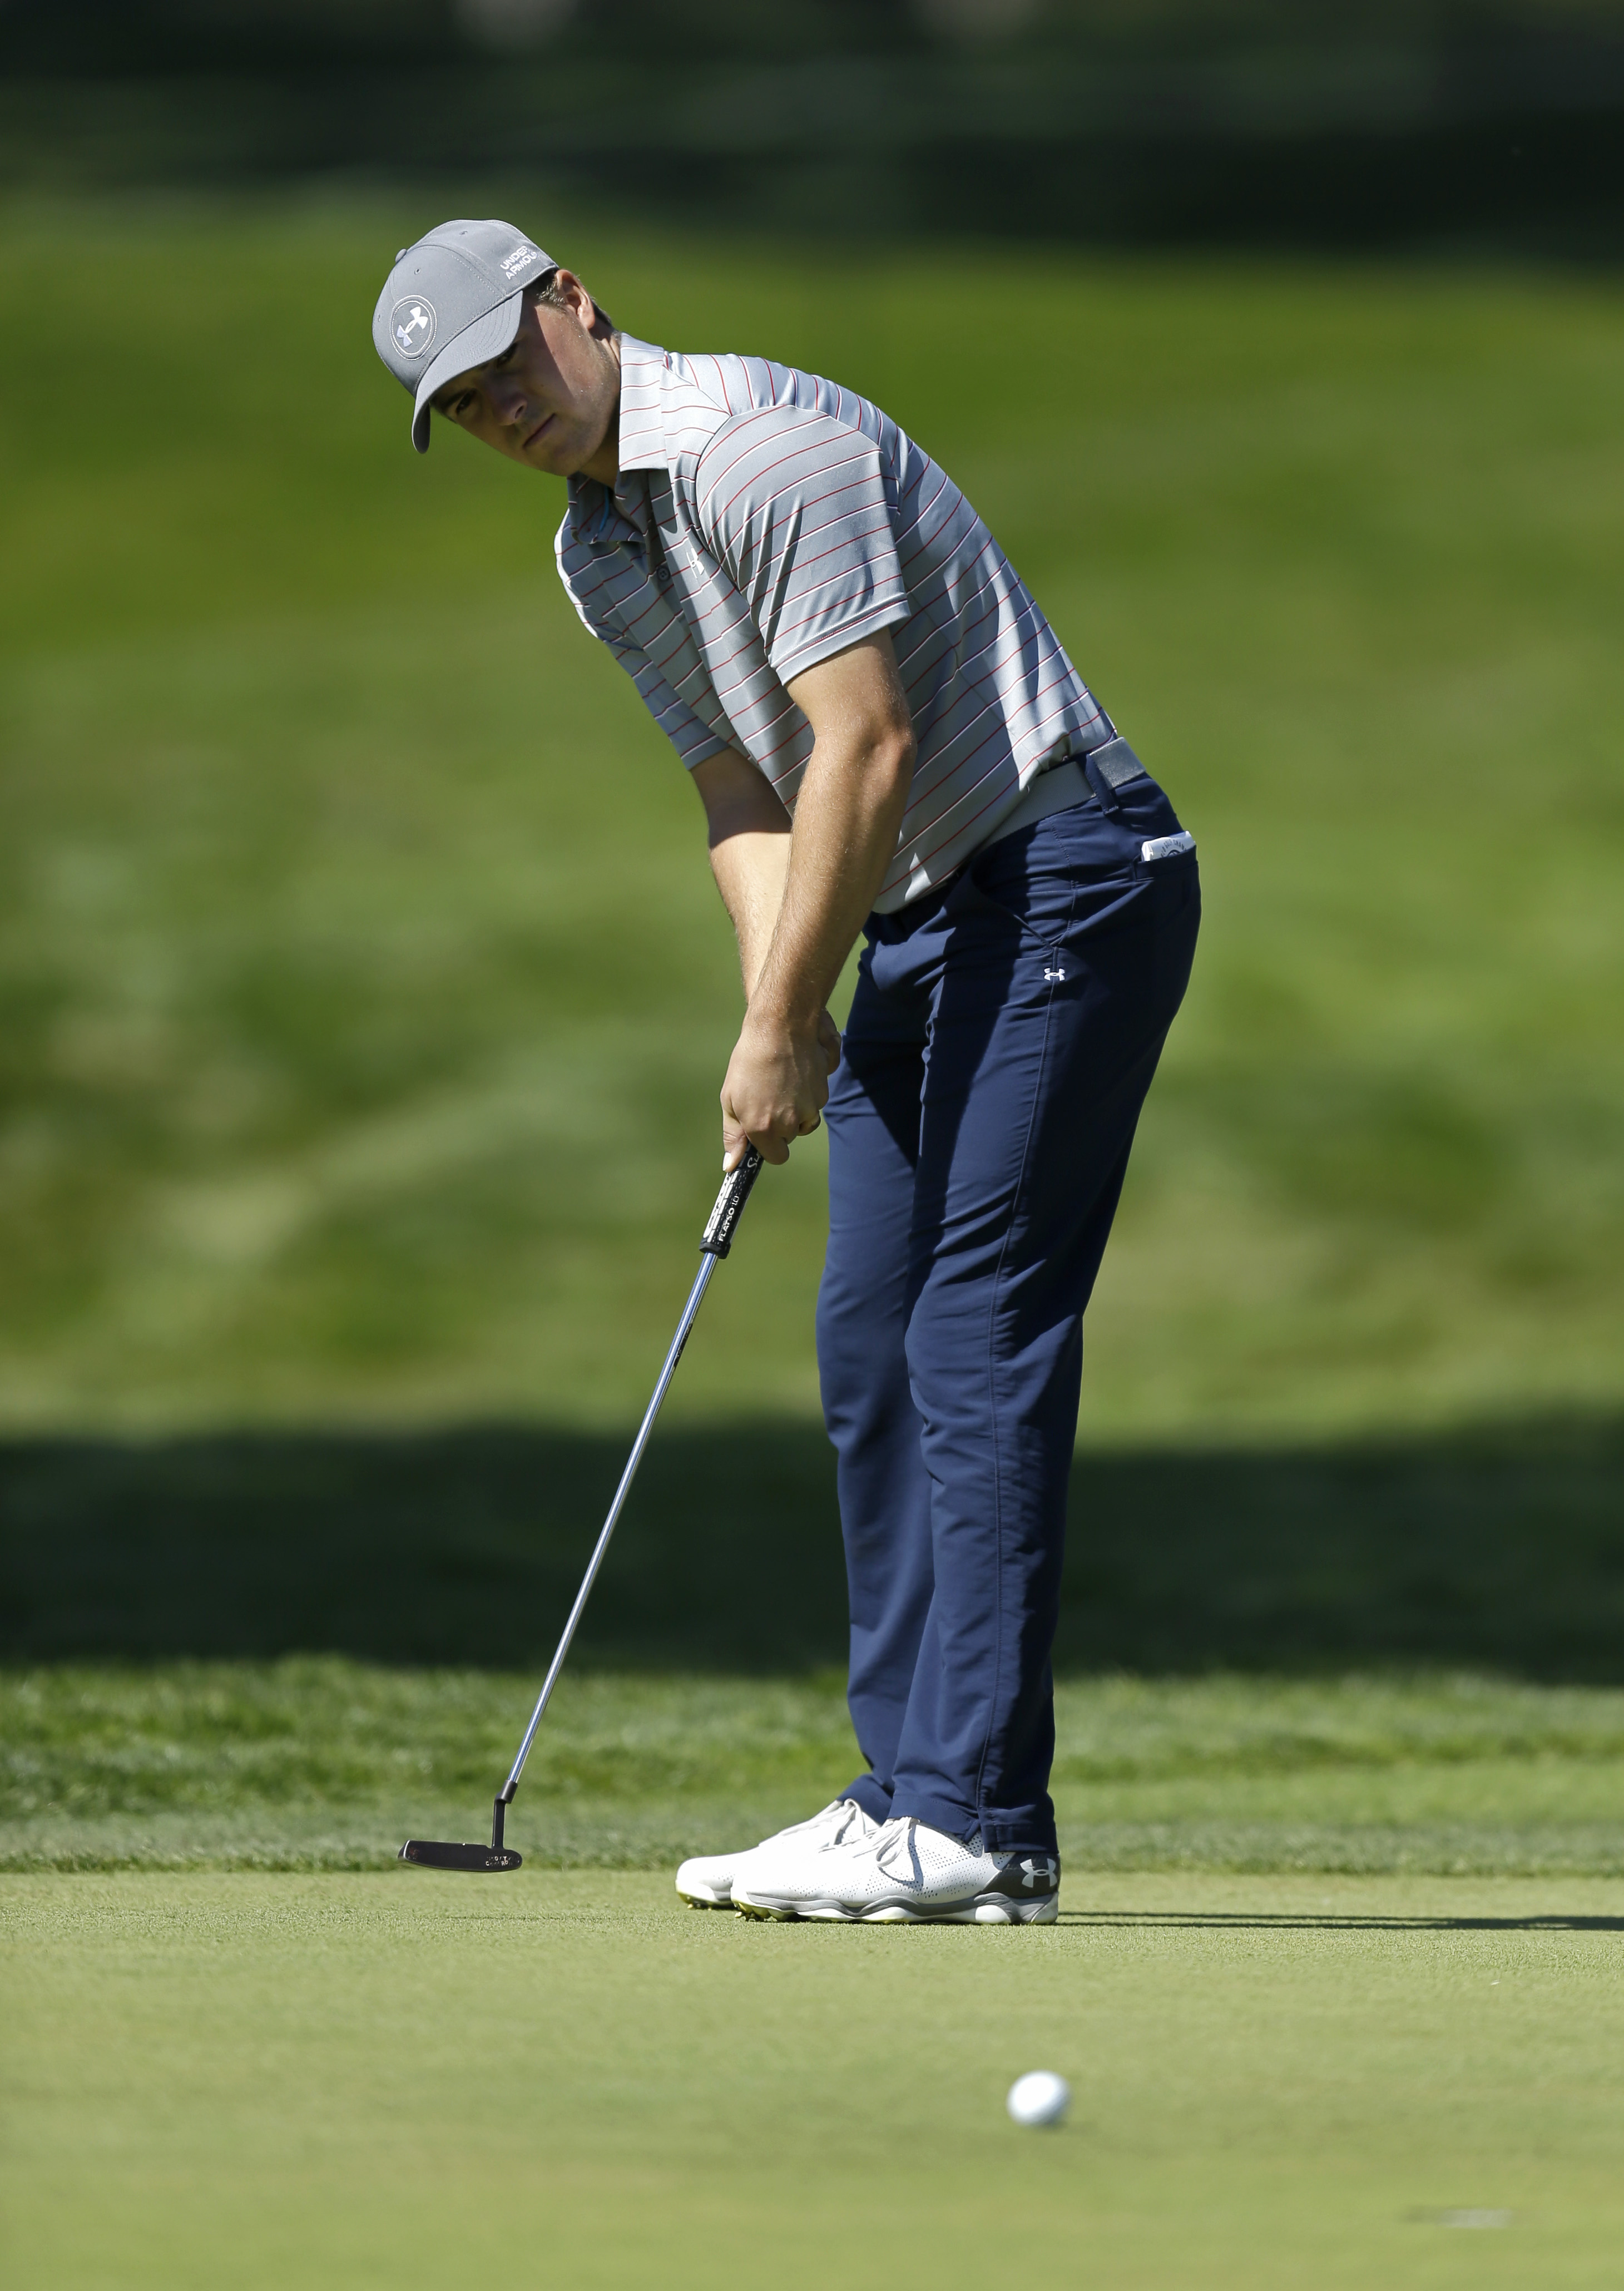 Jordan Spieth follows his shot on the fourth green of TPC Harding Park during round-robin play against Henrik Stenson, of Sweden, at the Match Play Championship golf tournament Thursday, April 30, 2015, in San Francisco. (AP Photo/Ben Margot)